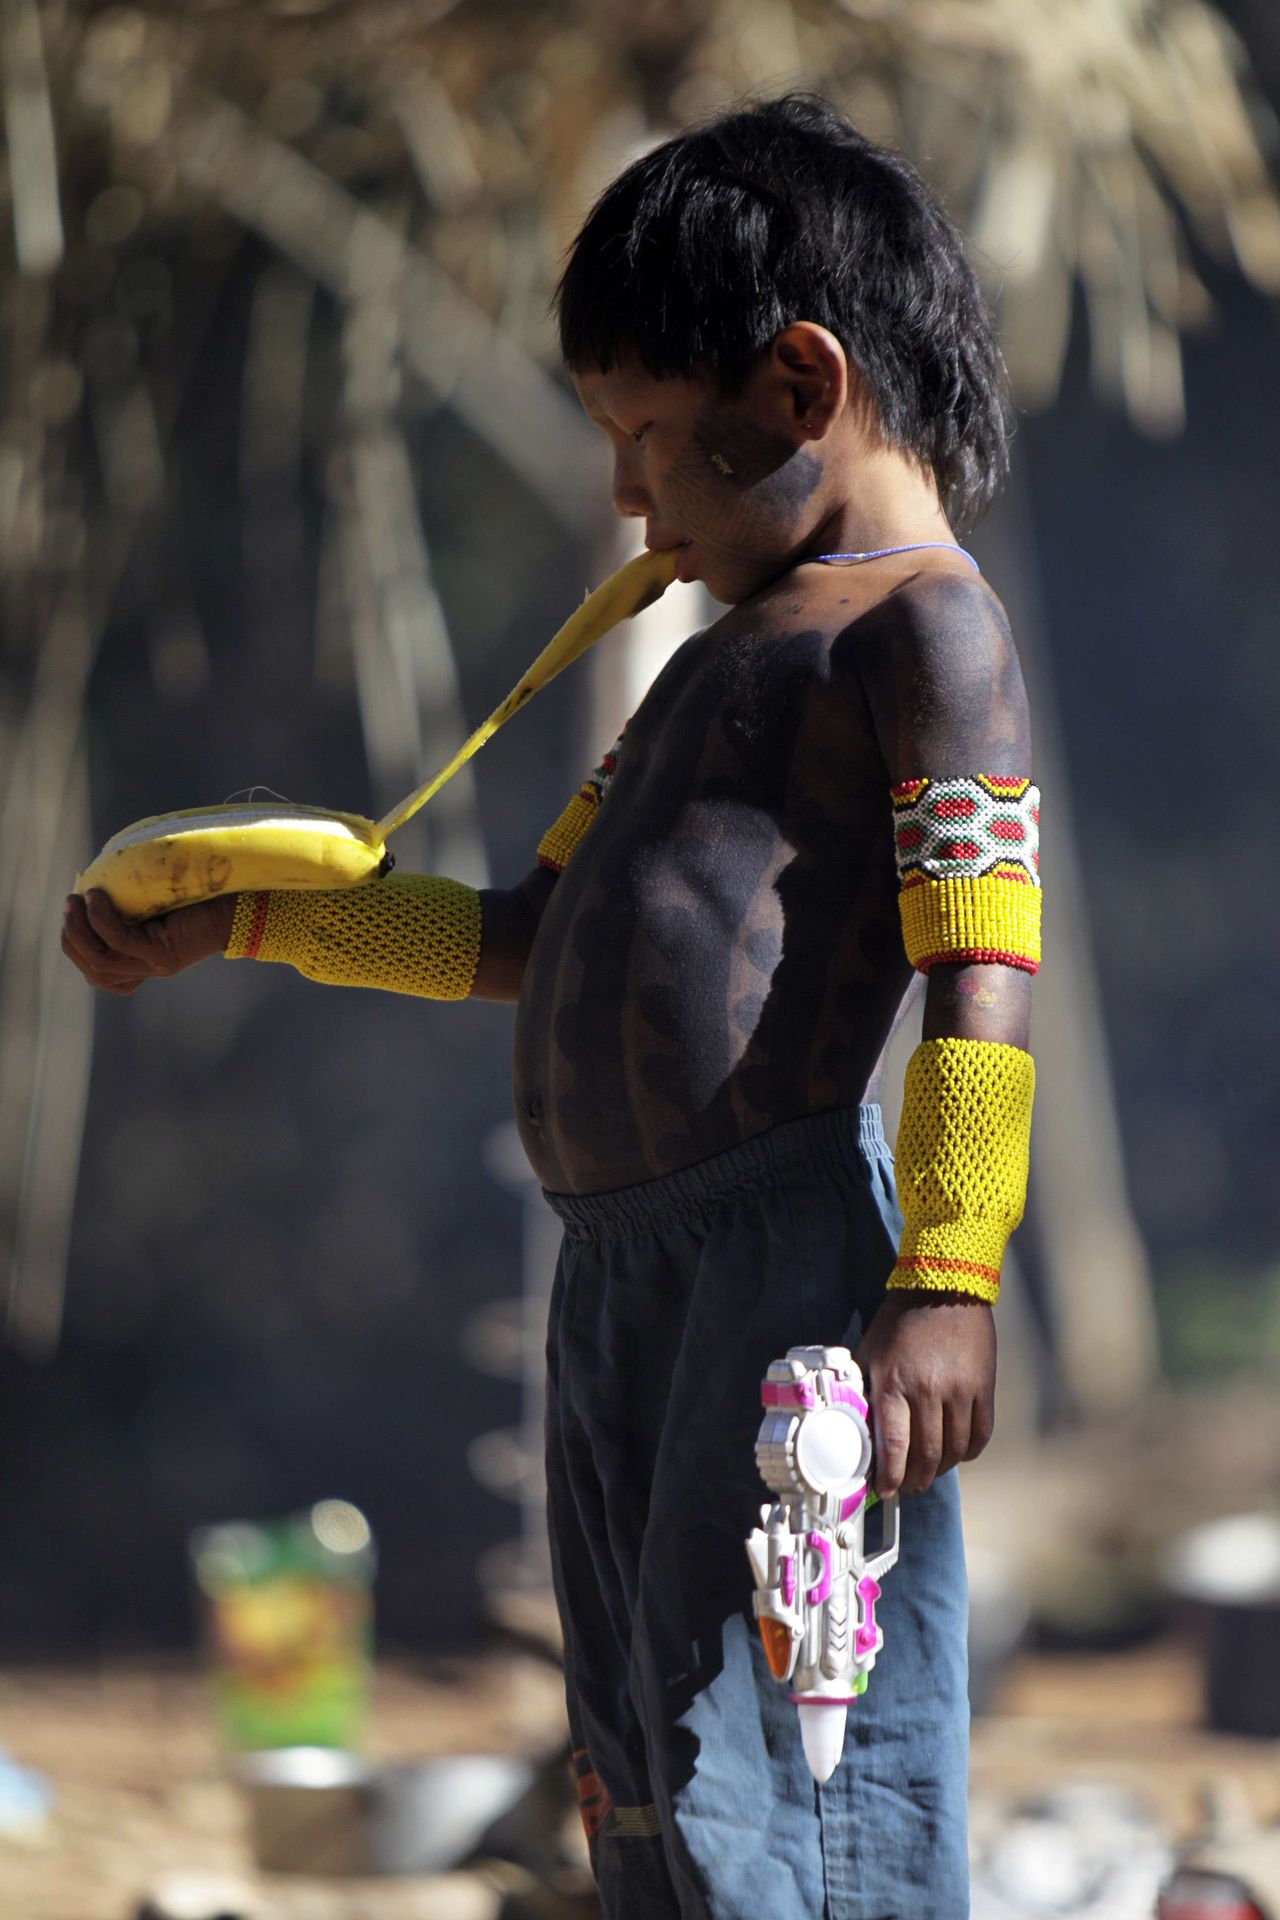 A Kayapo Indian boy peels a banana in a multiethnic village during the Meeting of Traditional Cultures of Chapada dos Veadeiros in Goias July 23, 2011. The meeting is a celebration of Brazilian popular culture and the intersection between the various manifestations of traditional culture around the midwest and across the country. Picture taken July 23, 2011. REUTERS/Ueslei Marcelino (BRAZIL - Tags: SOCIETY FOOD)